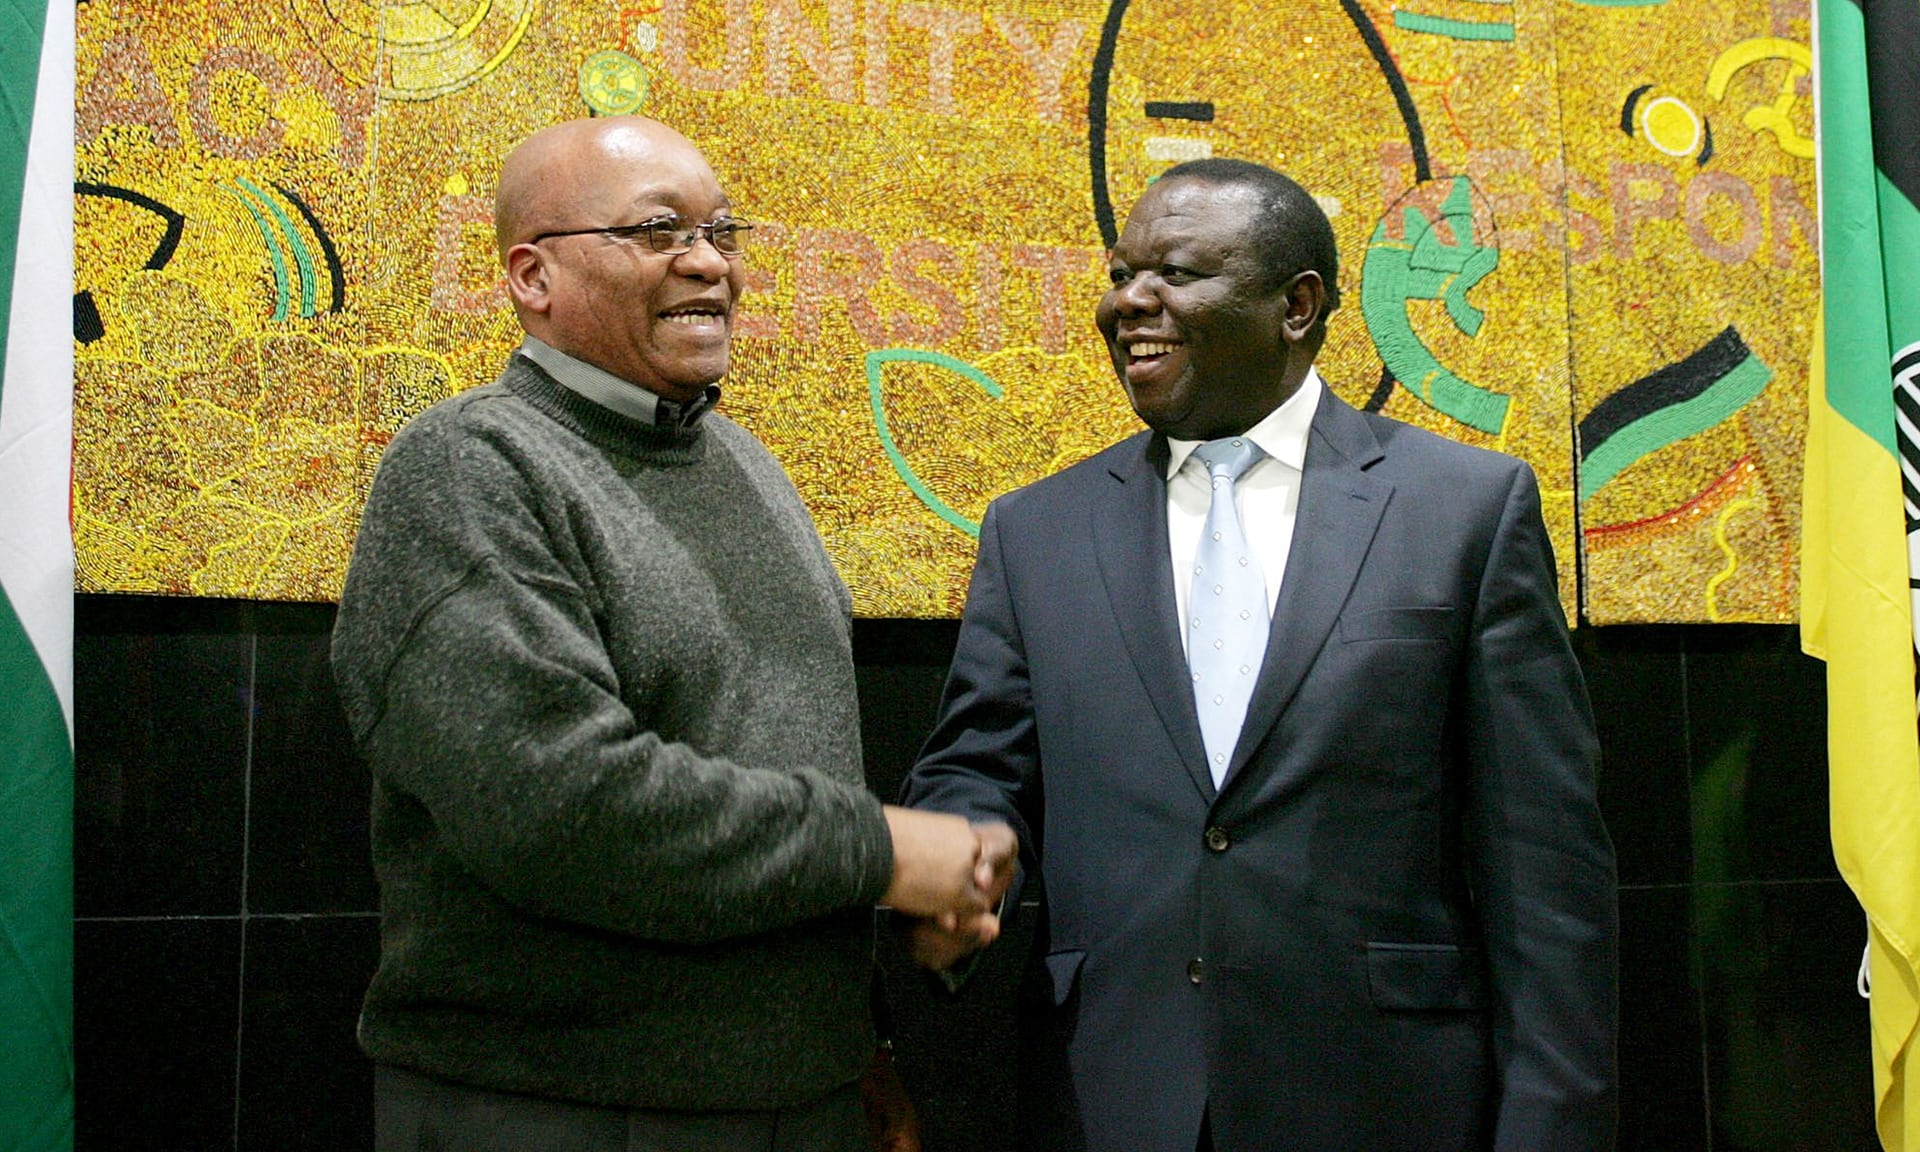 South African leader Jacob Zuma shakes hands with Tsvangirai in Johannesburg at the African National Congress Headquarters in 2009.